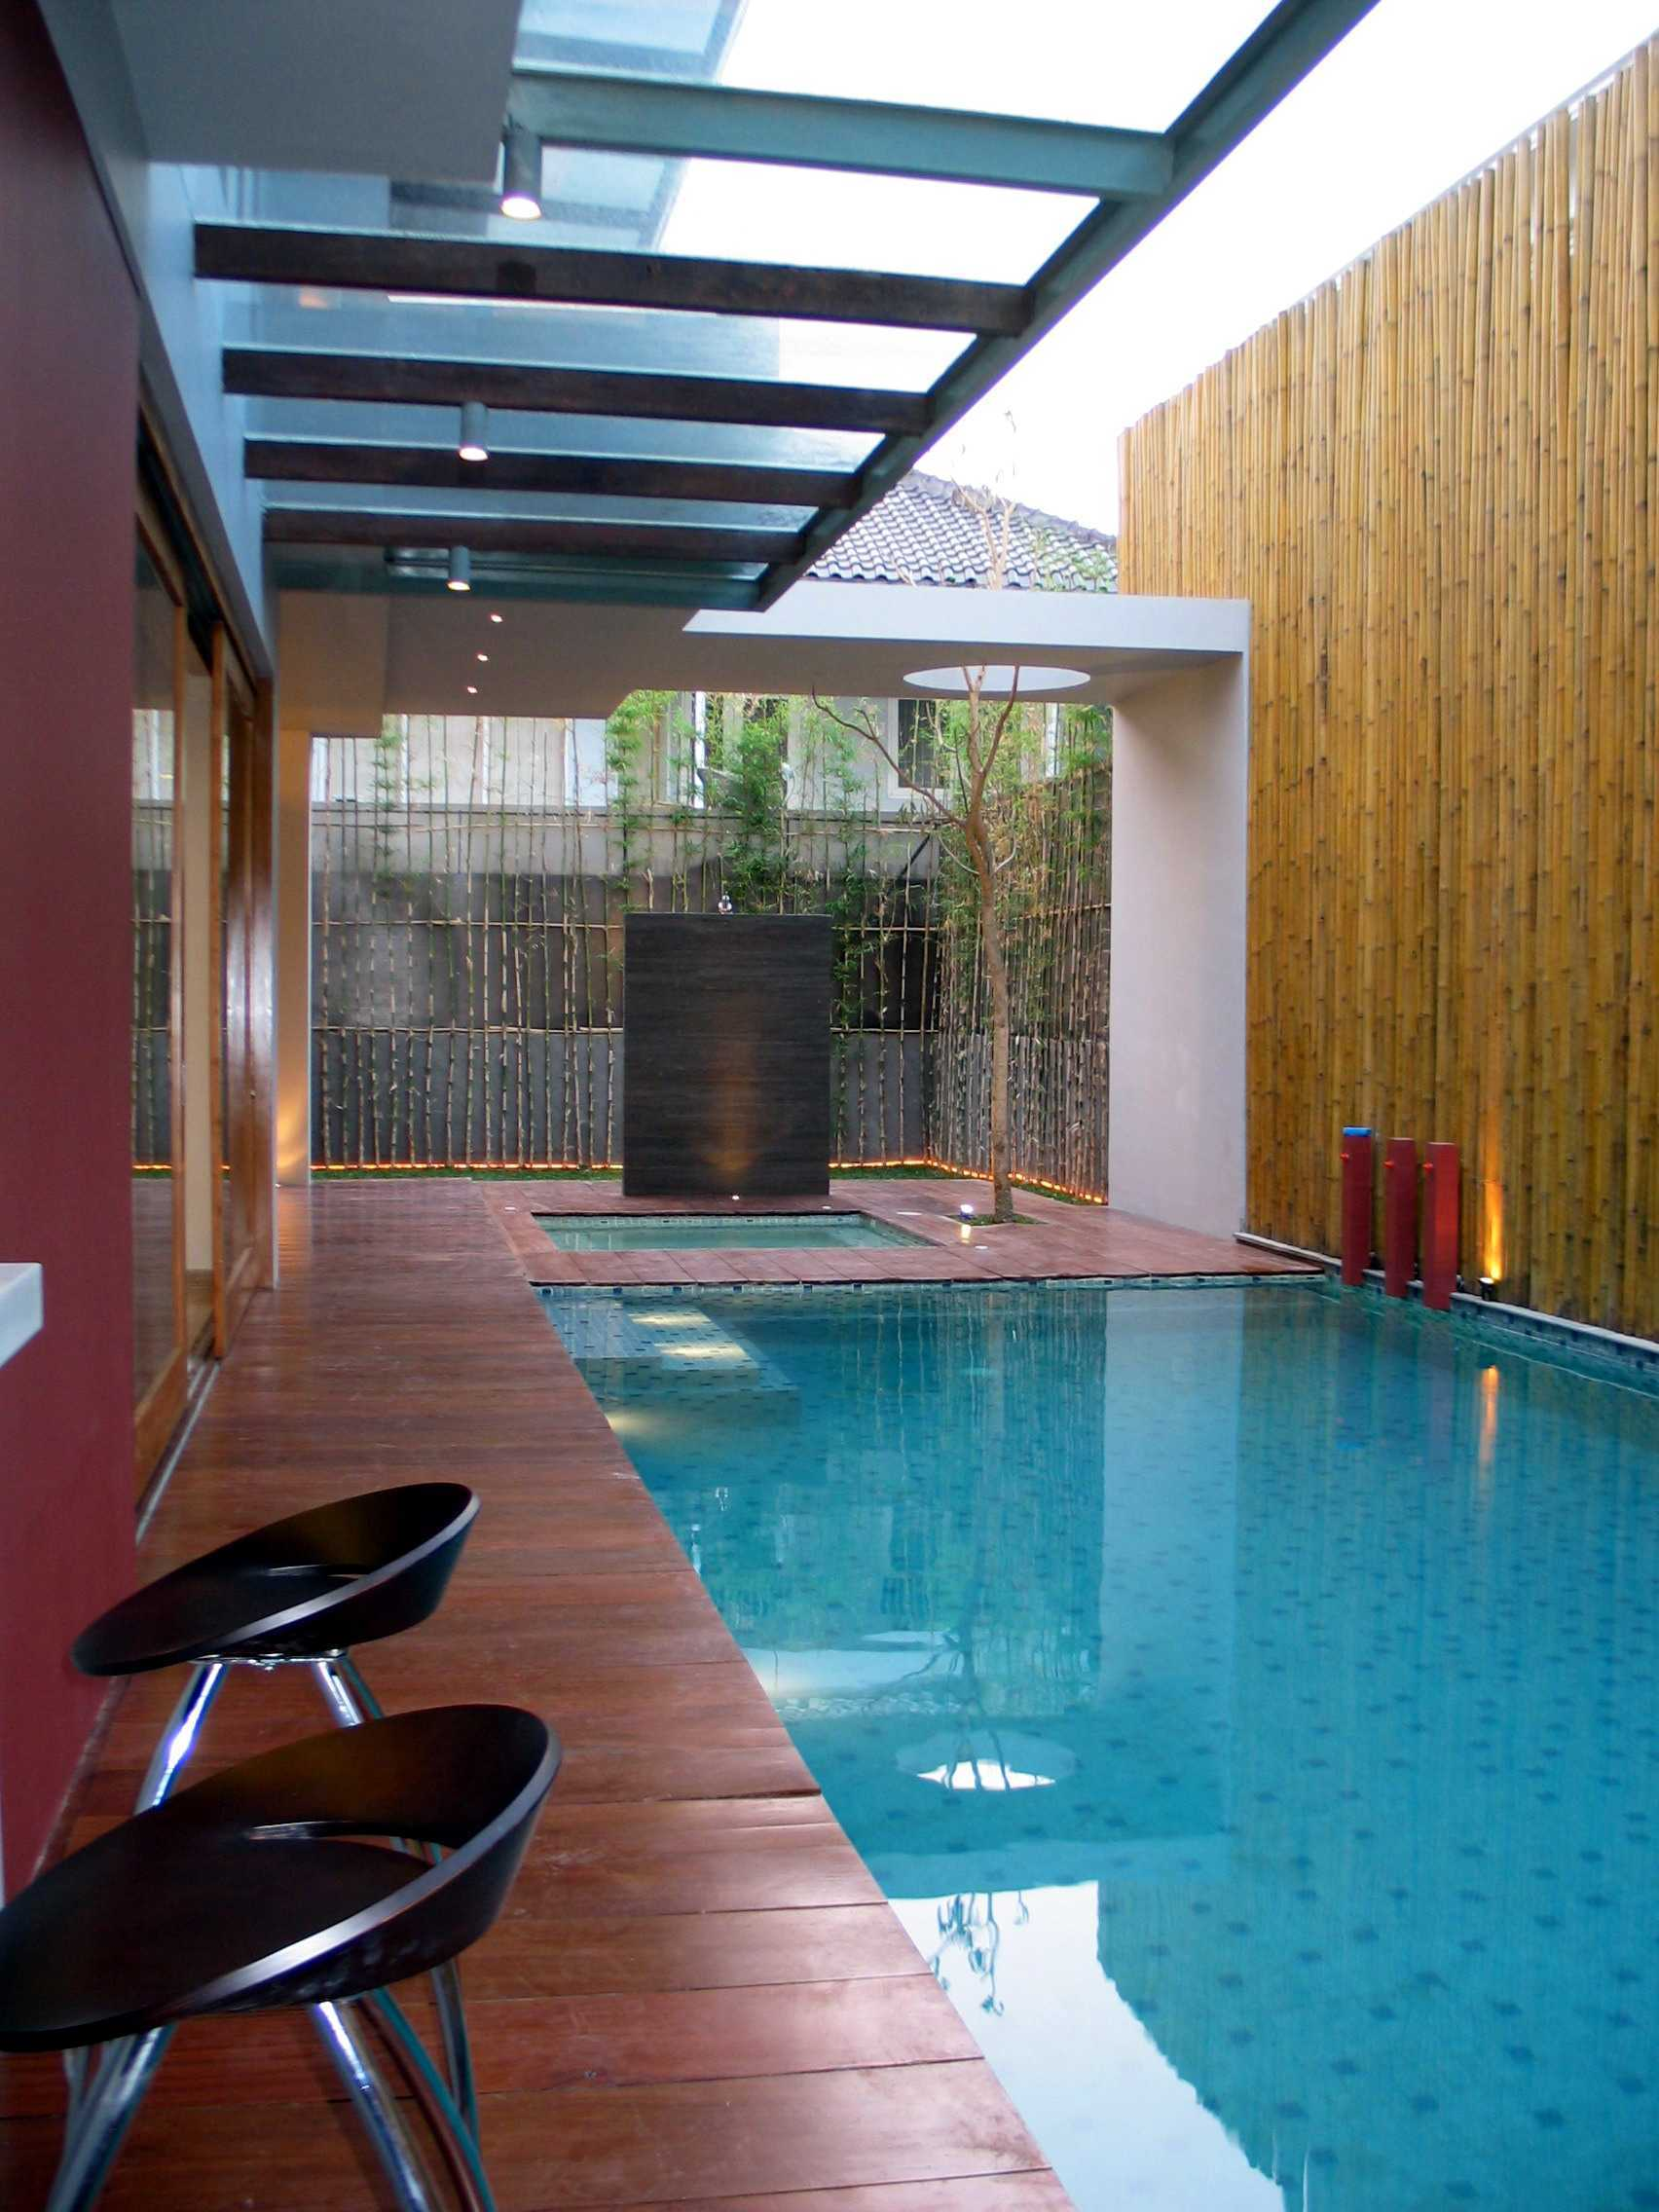 Herryj Architects Gv House Lippo Karawaci Lippo Karawaci Swimming Pool Area Tropis  23925